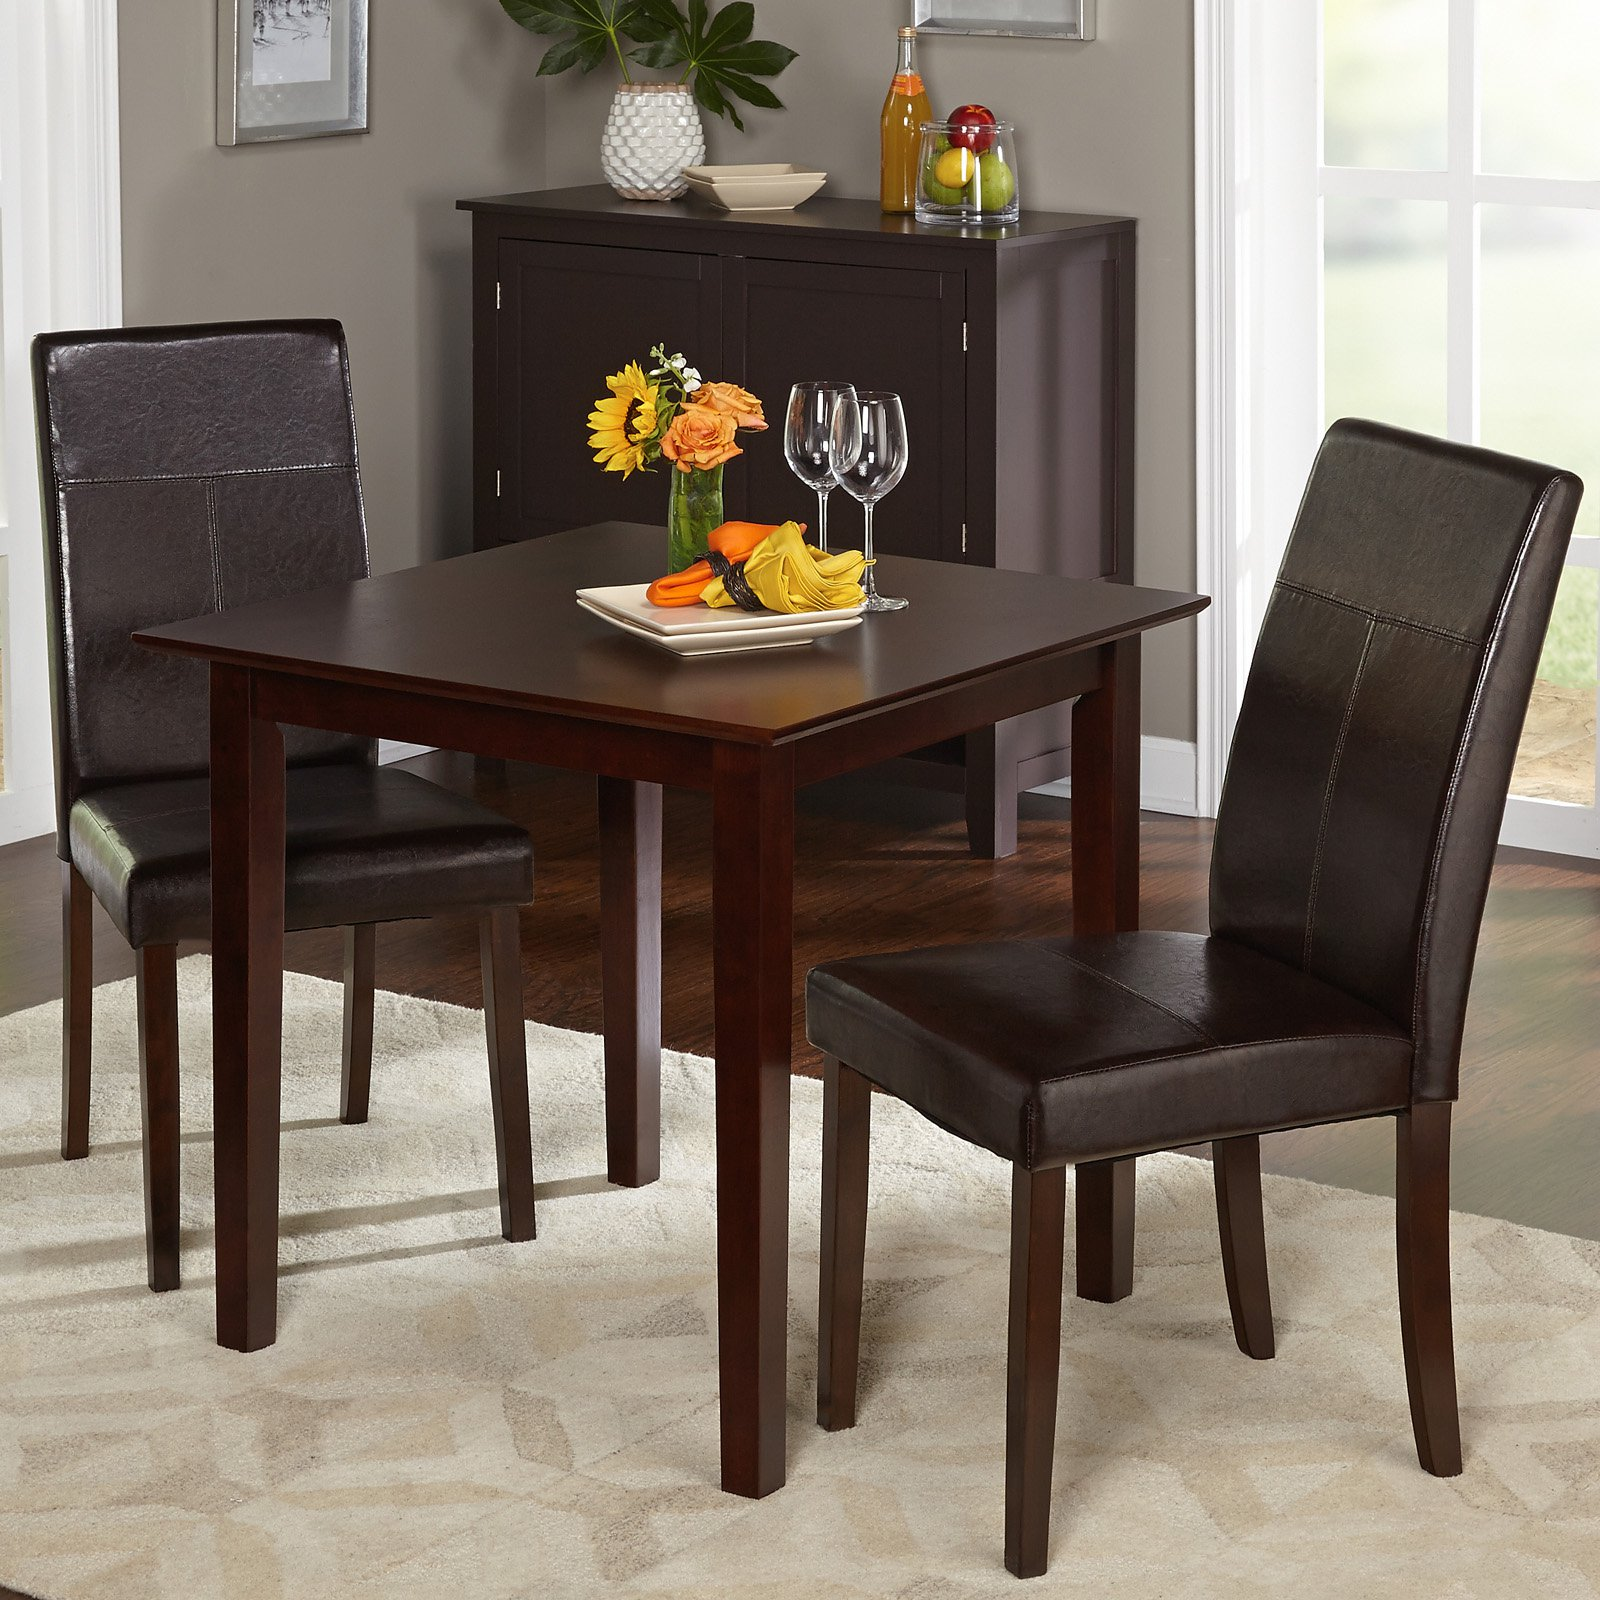 Target Marketing Systems Bettega 3 Piece Dining Table Set